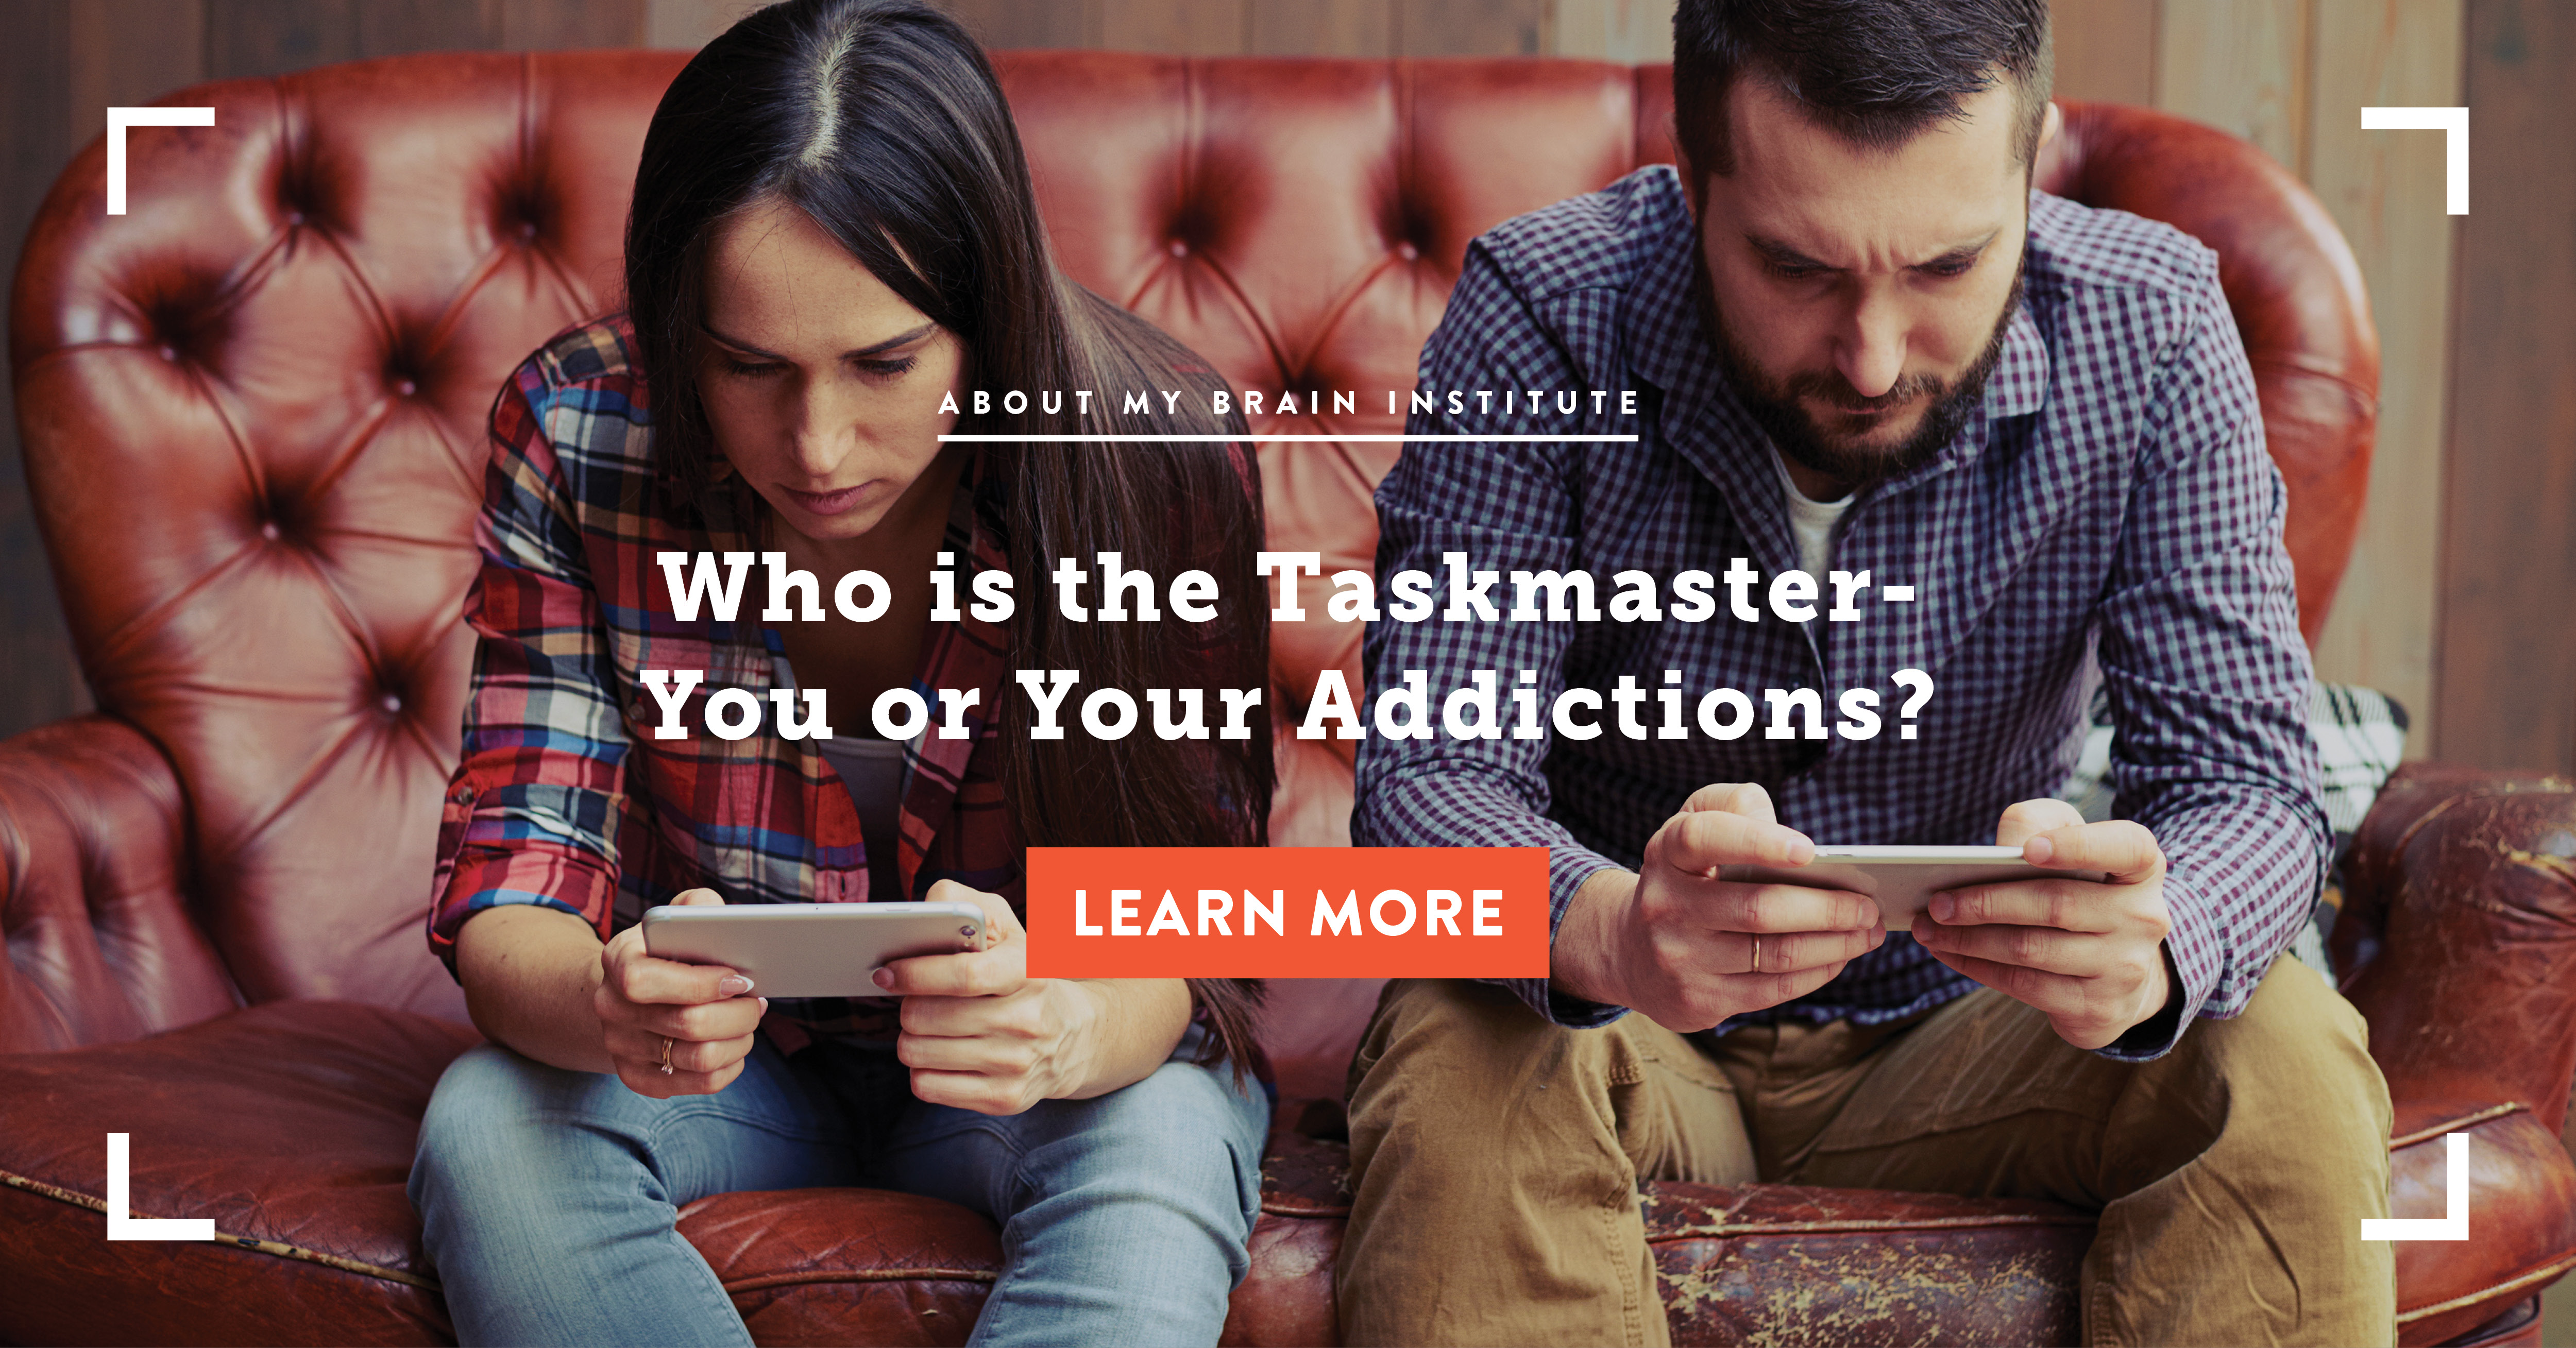 Who Is The Taskmaster - You Or Your Addictions?